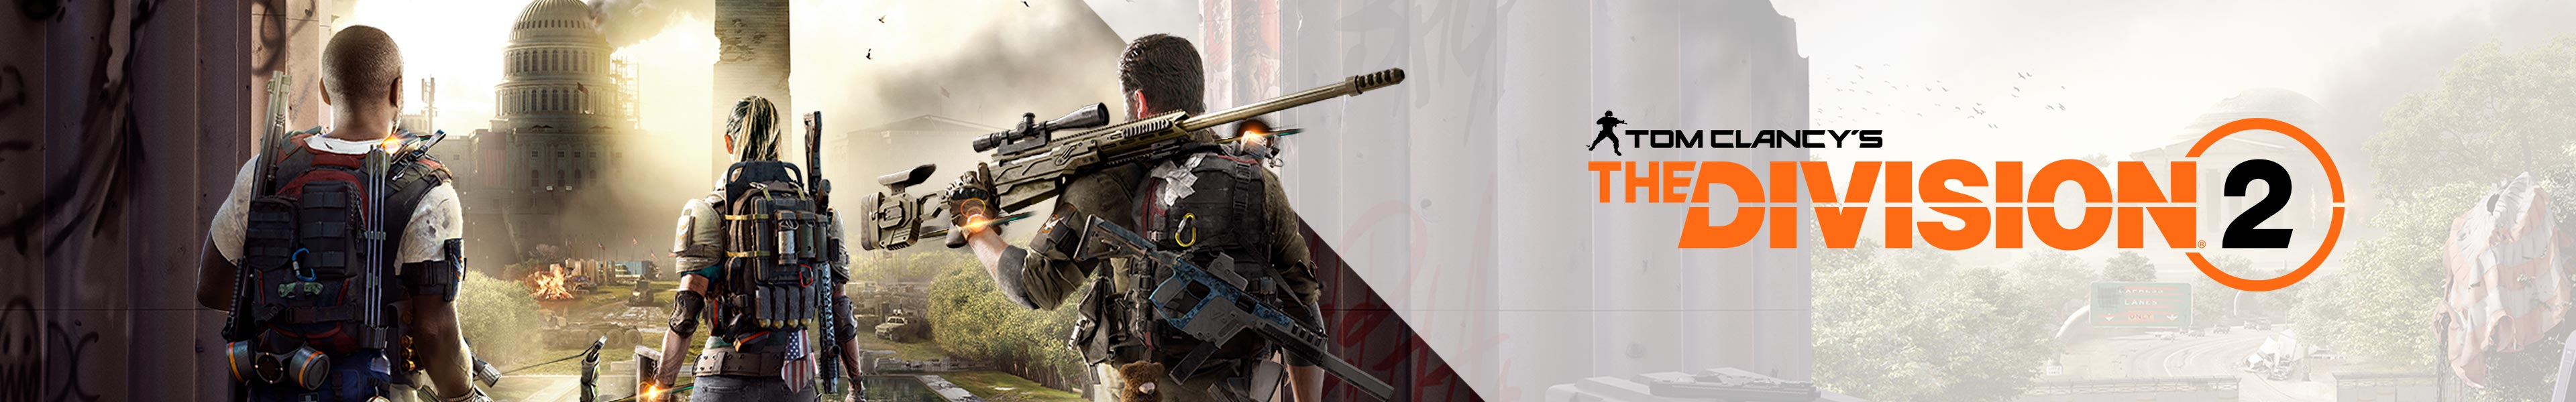 The Division 2 Category banner